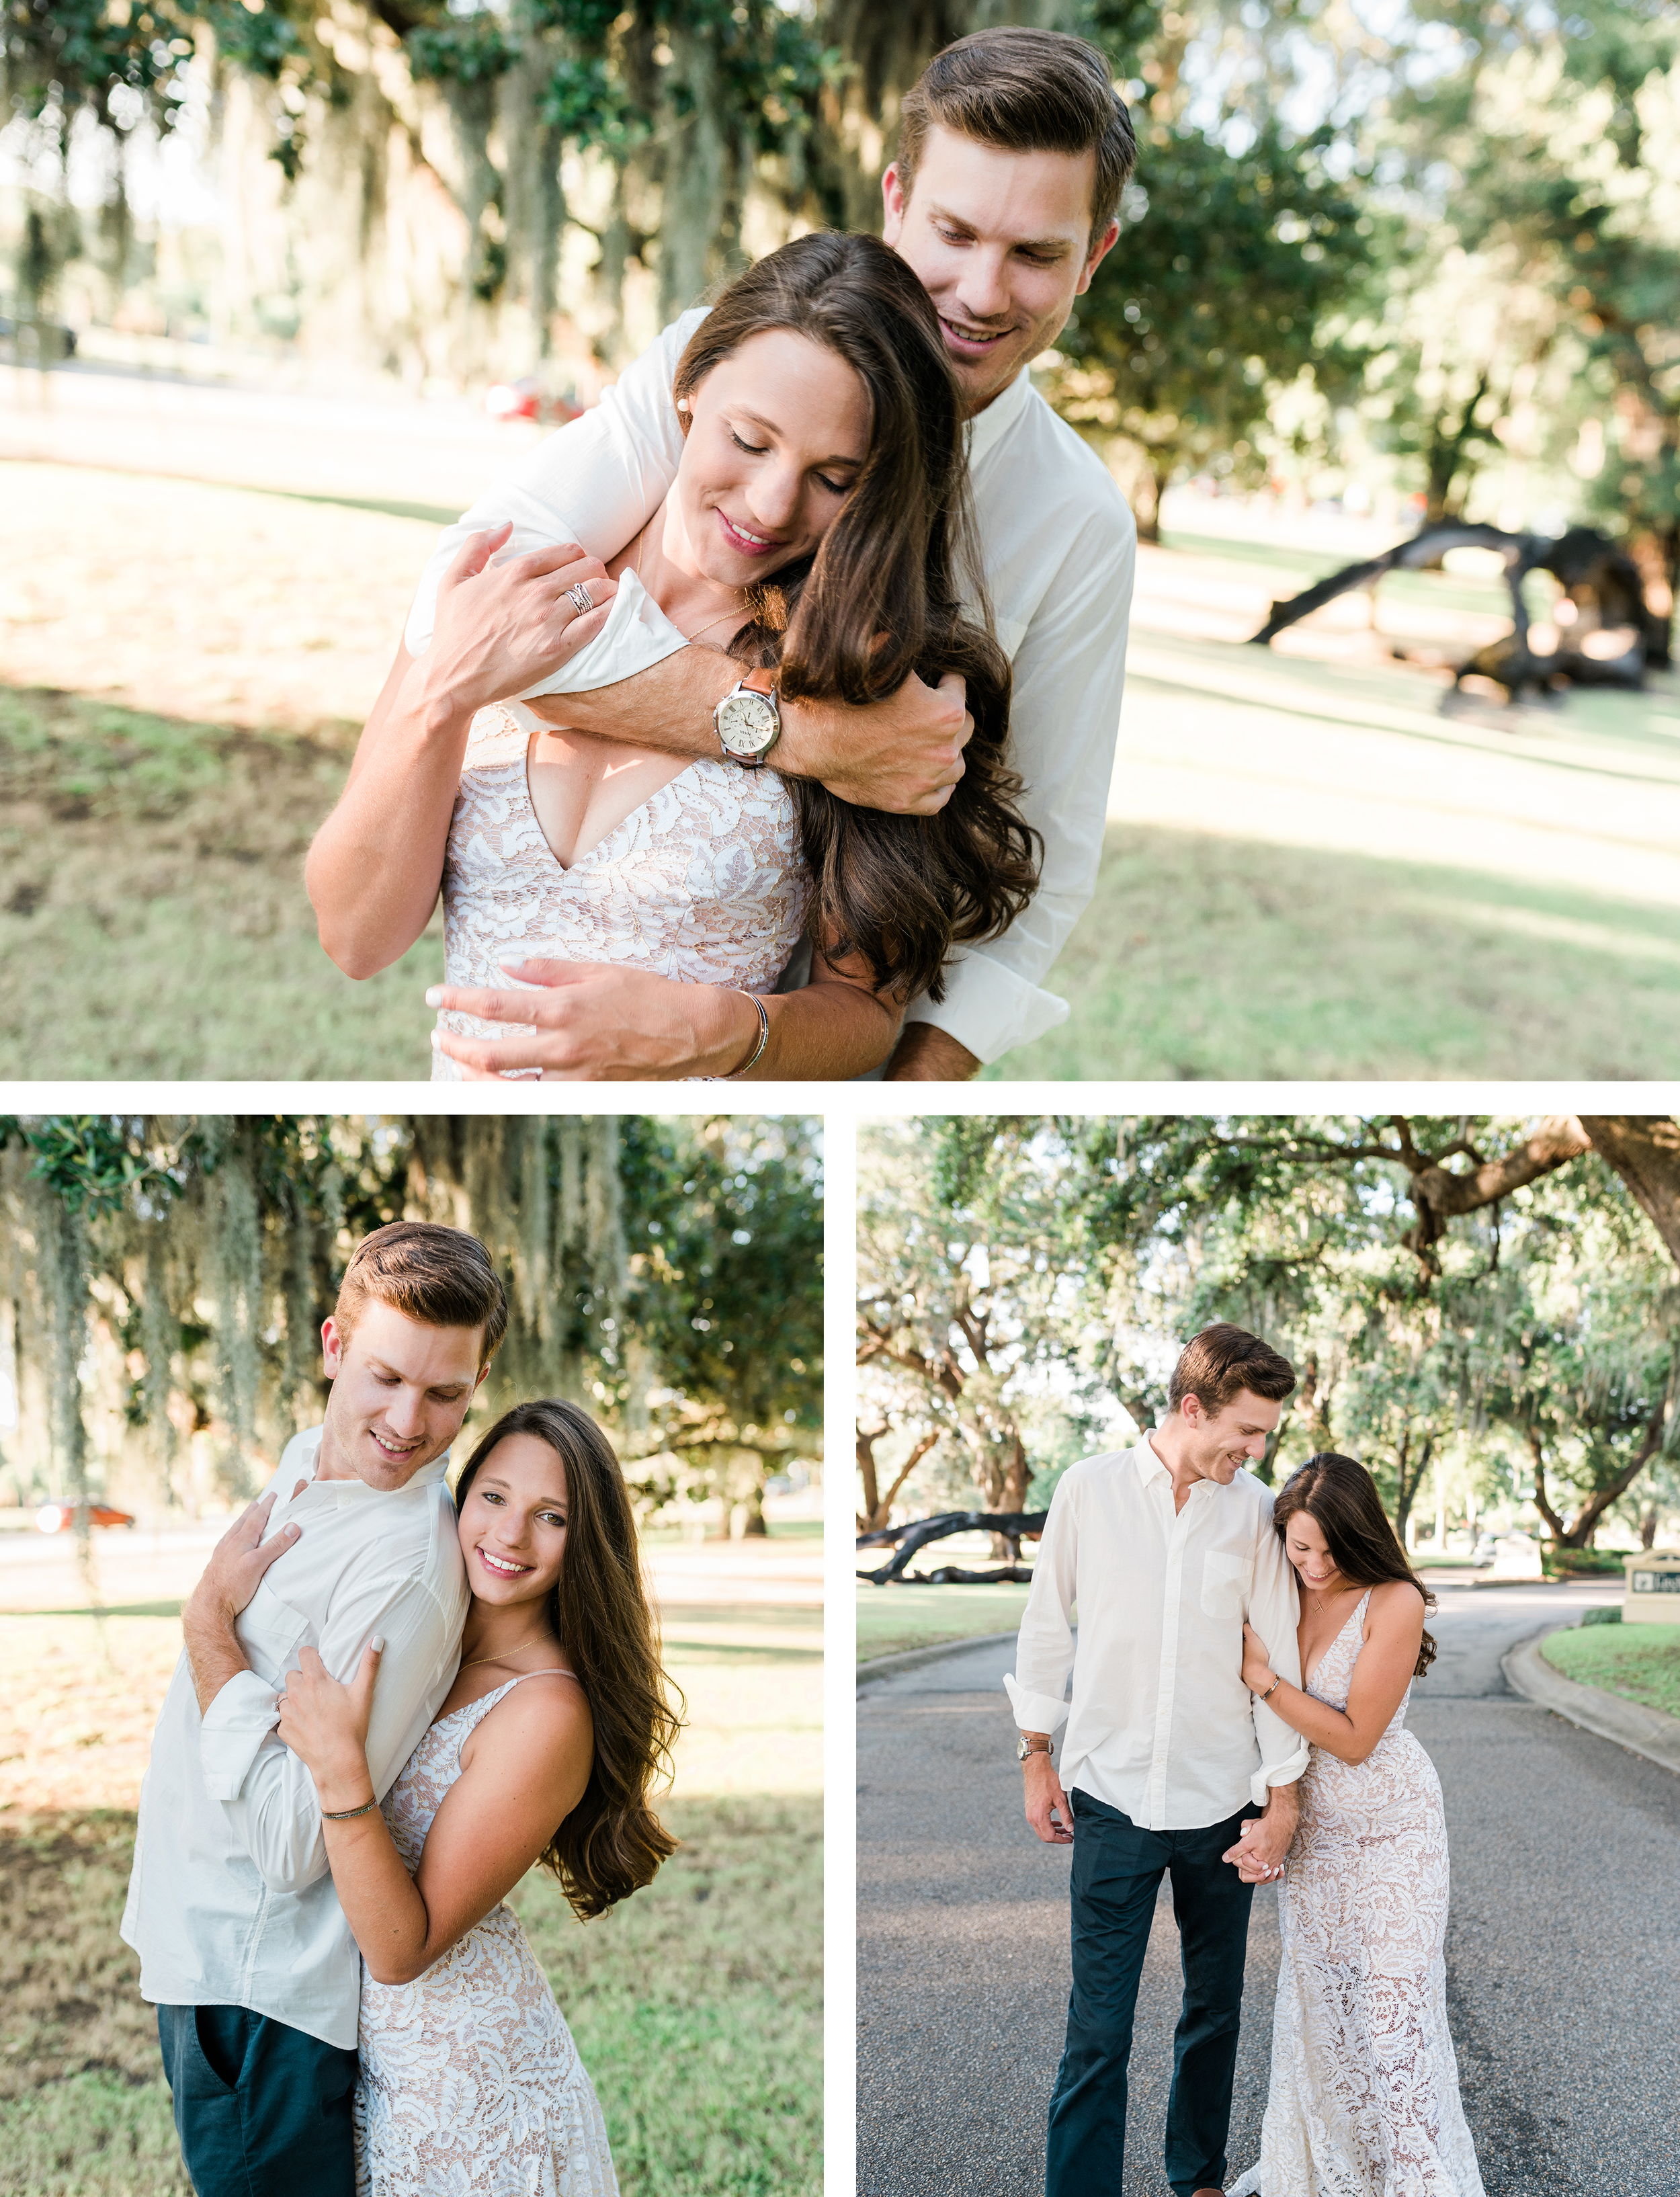 Evan Haley Engagement_Pawleys Island SC_Kristen Paige Photography_Gallery 2.png